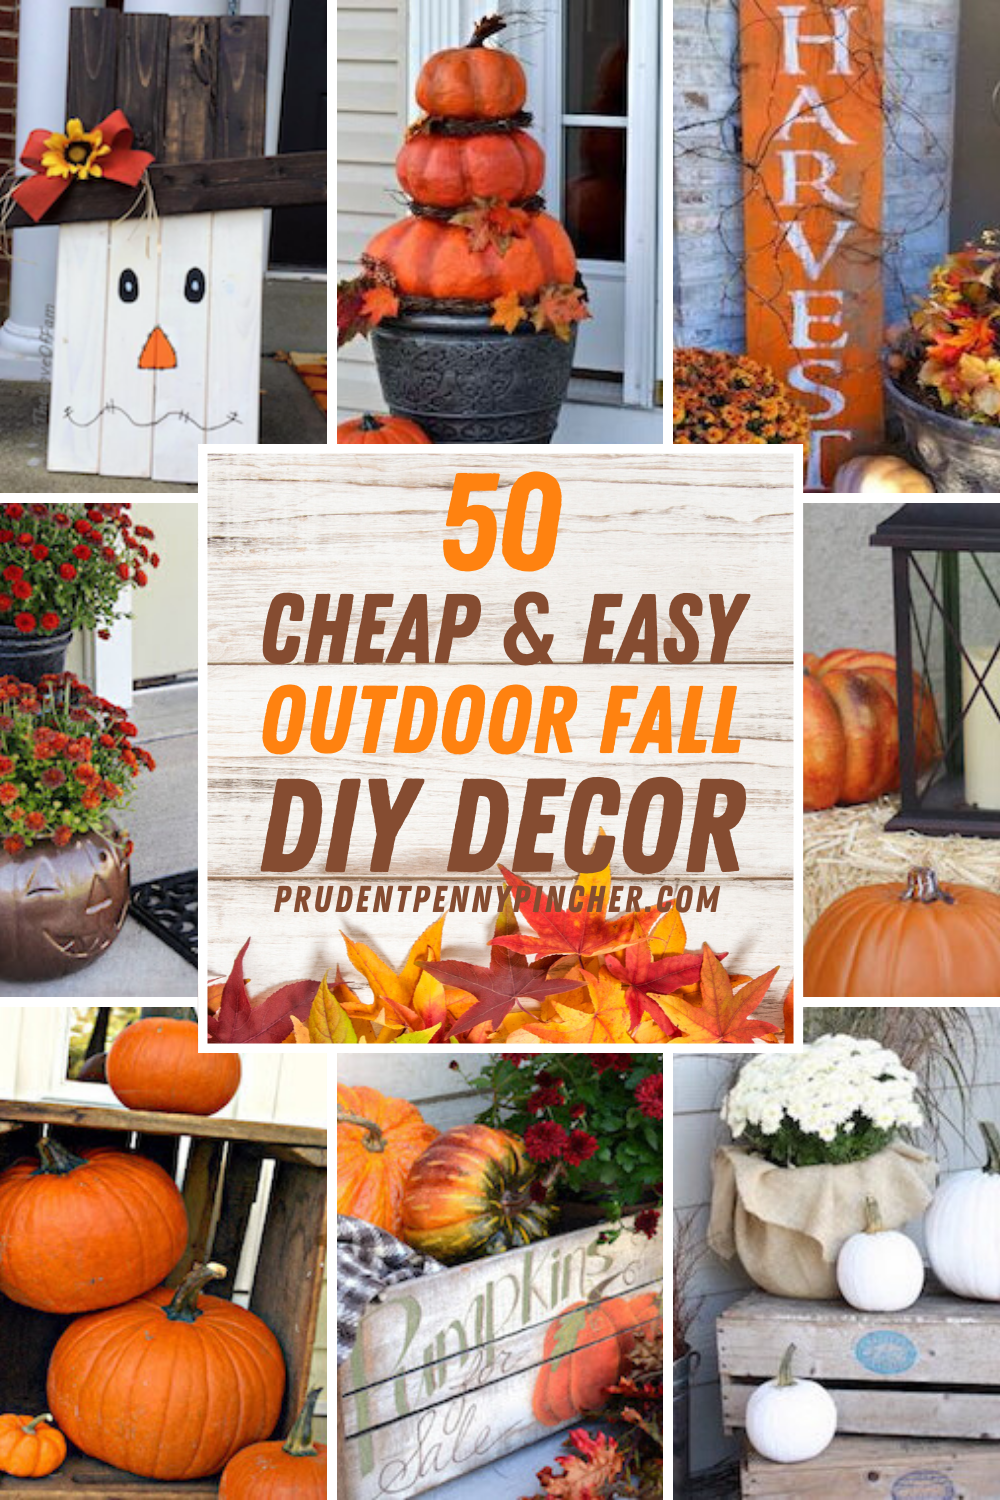 50 Cheap And Easy Diy Outdoor Fall Decorations In 2020 Fall Outdoor Decor Fall Decor Diy Fall Decorations Porch